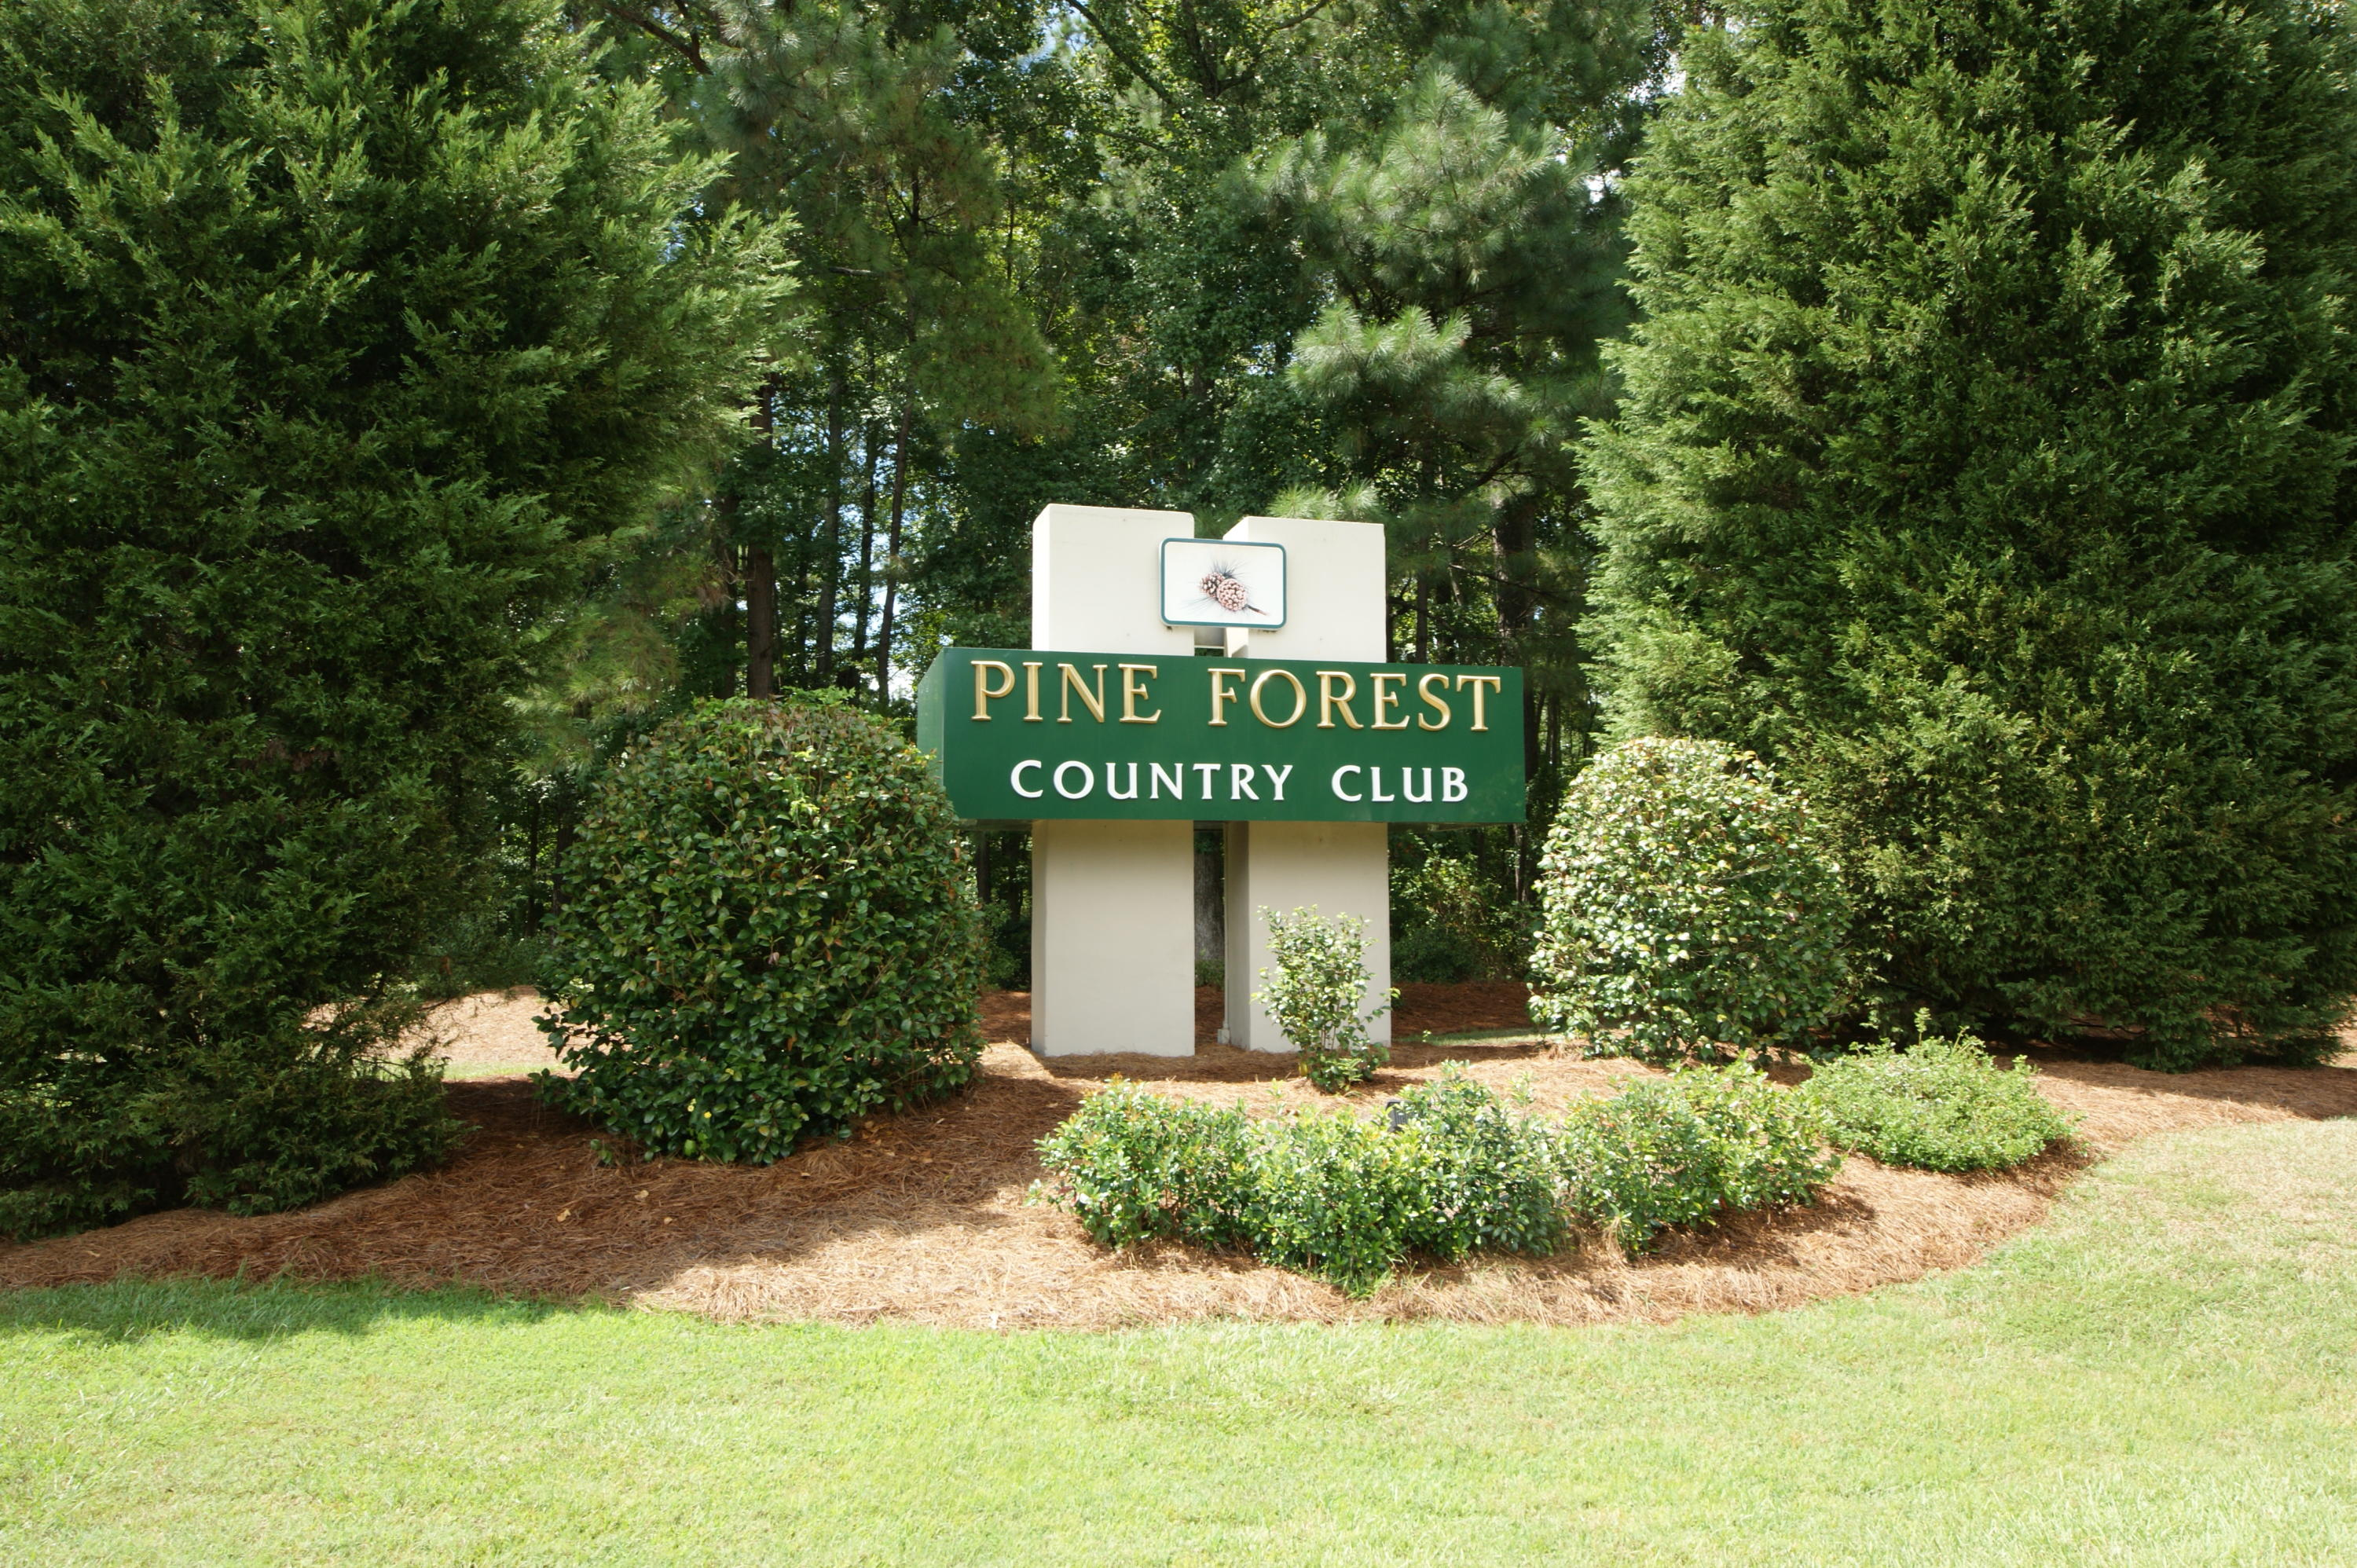 Pine Forest Country Club Homes For Sale - 624 Kilarney, Summerville, SC - 29